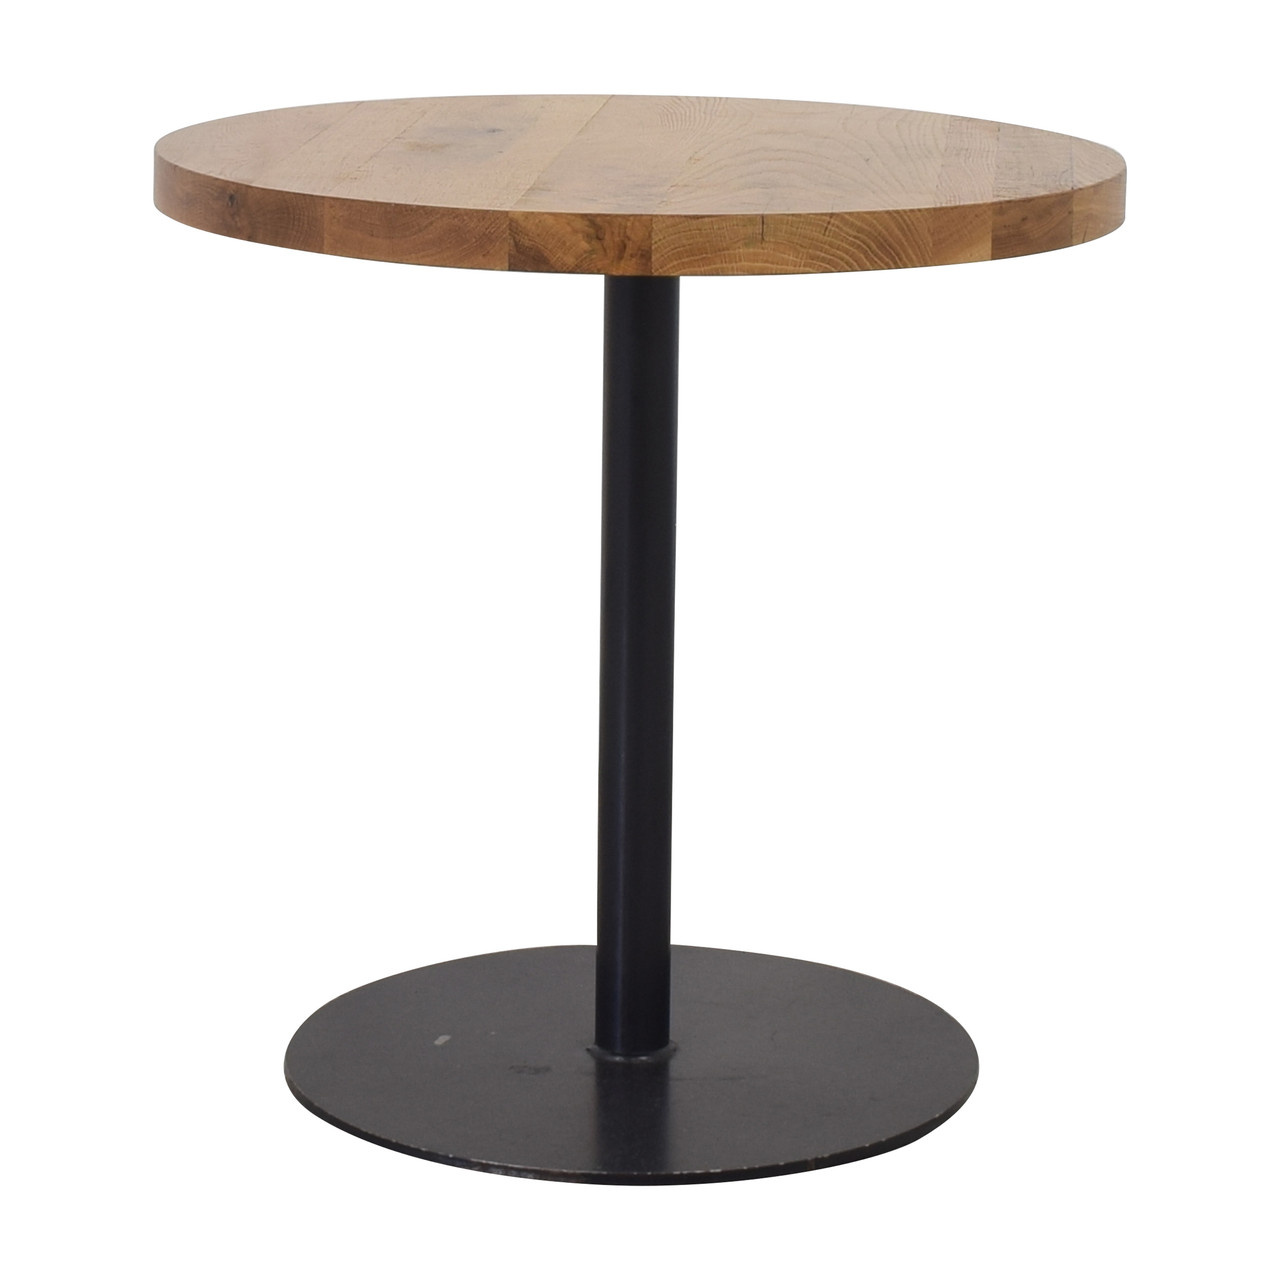 crow_works_round_base_table.jpeg